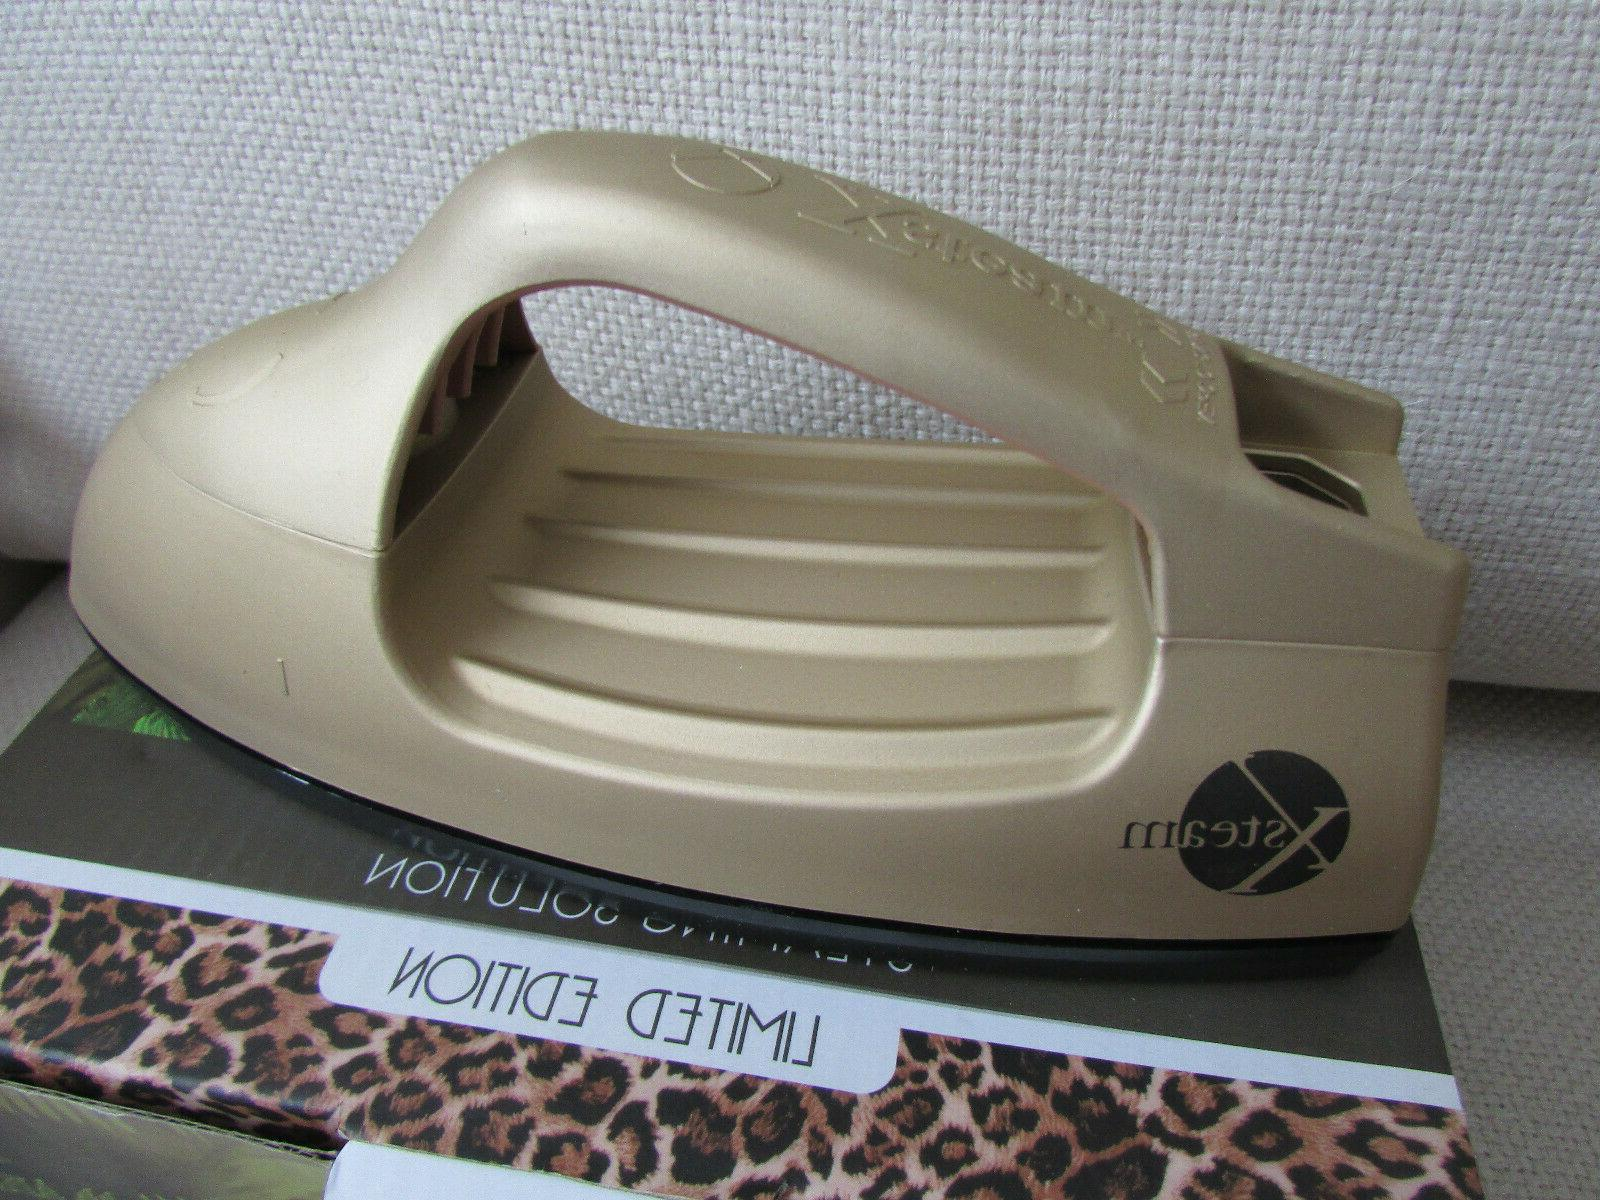 leopard garment steam professional iron steamer travel